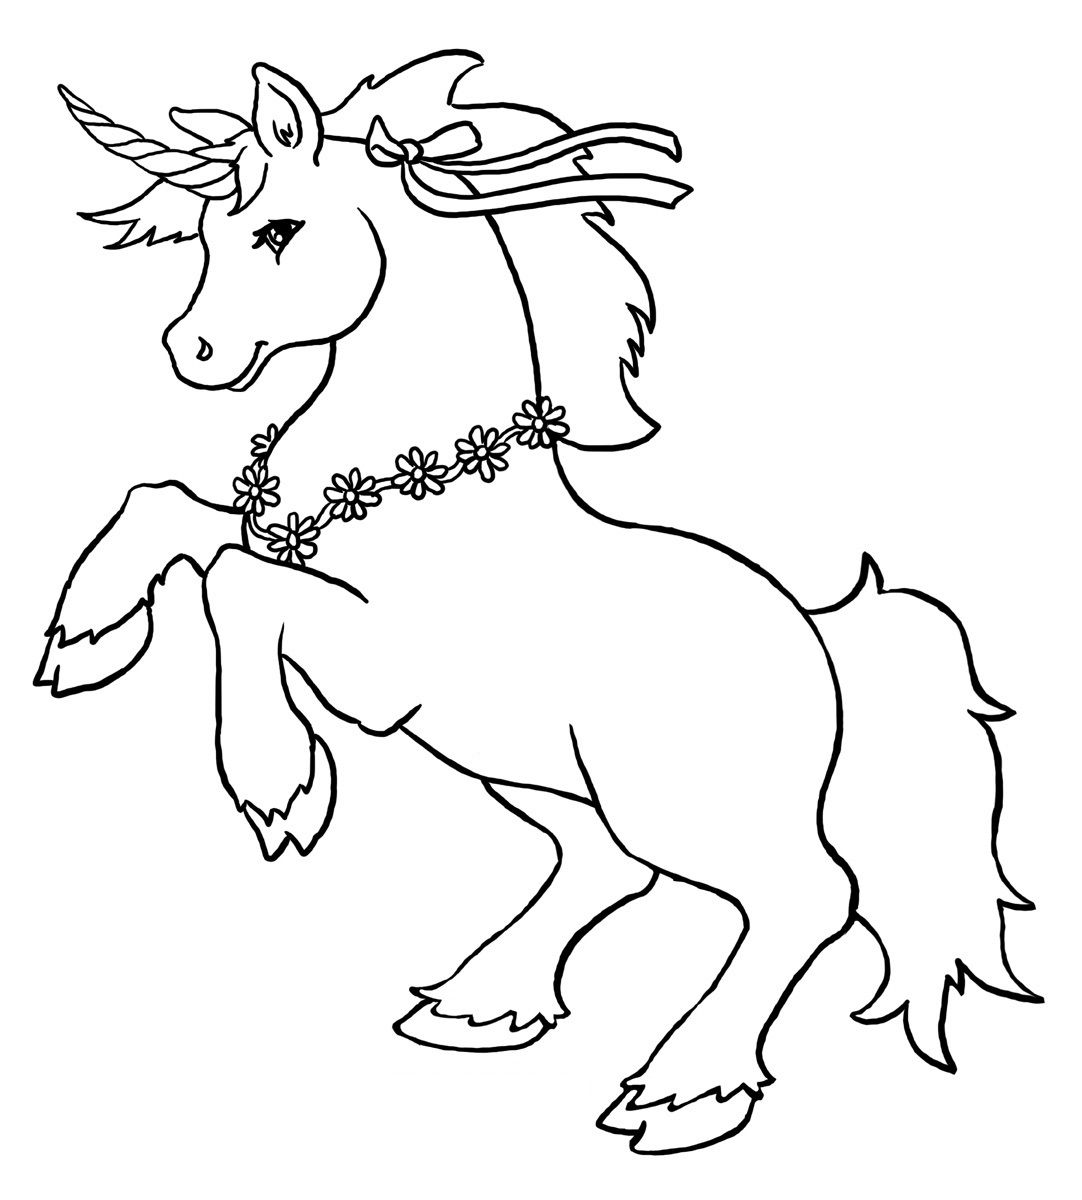 Free Printable Unicorn Coloring Pages For Kids Unicorn Pictures